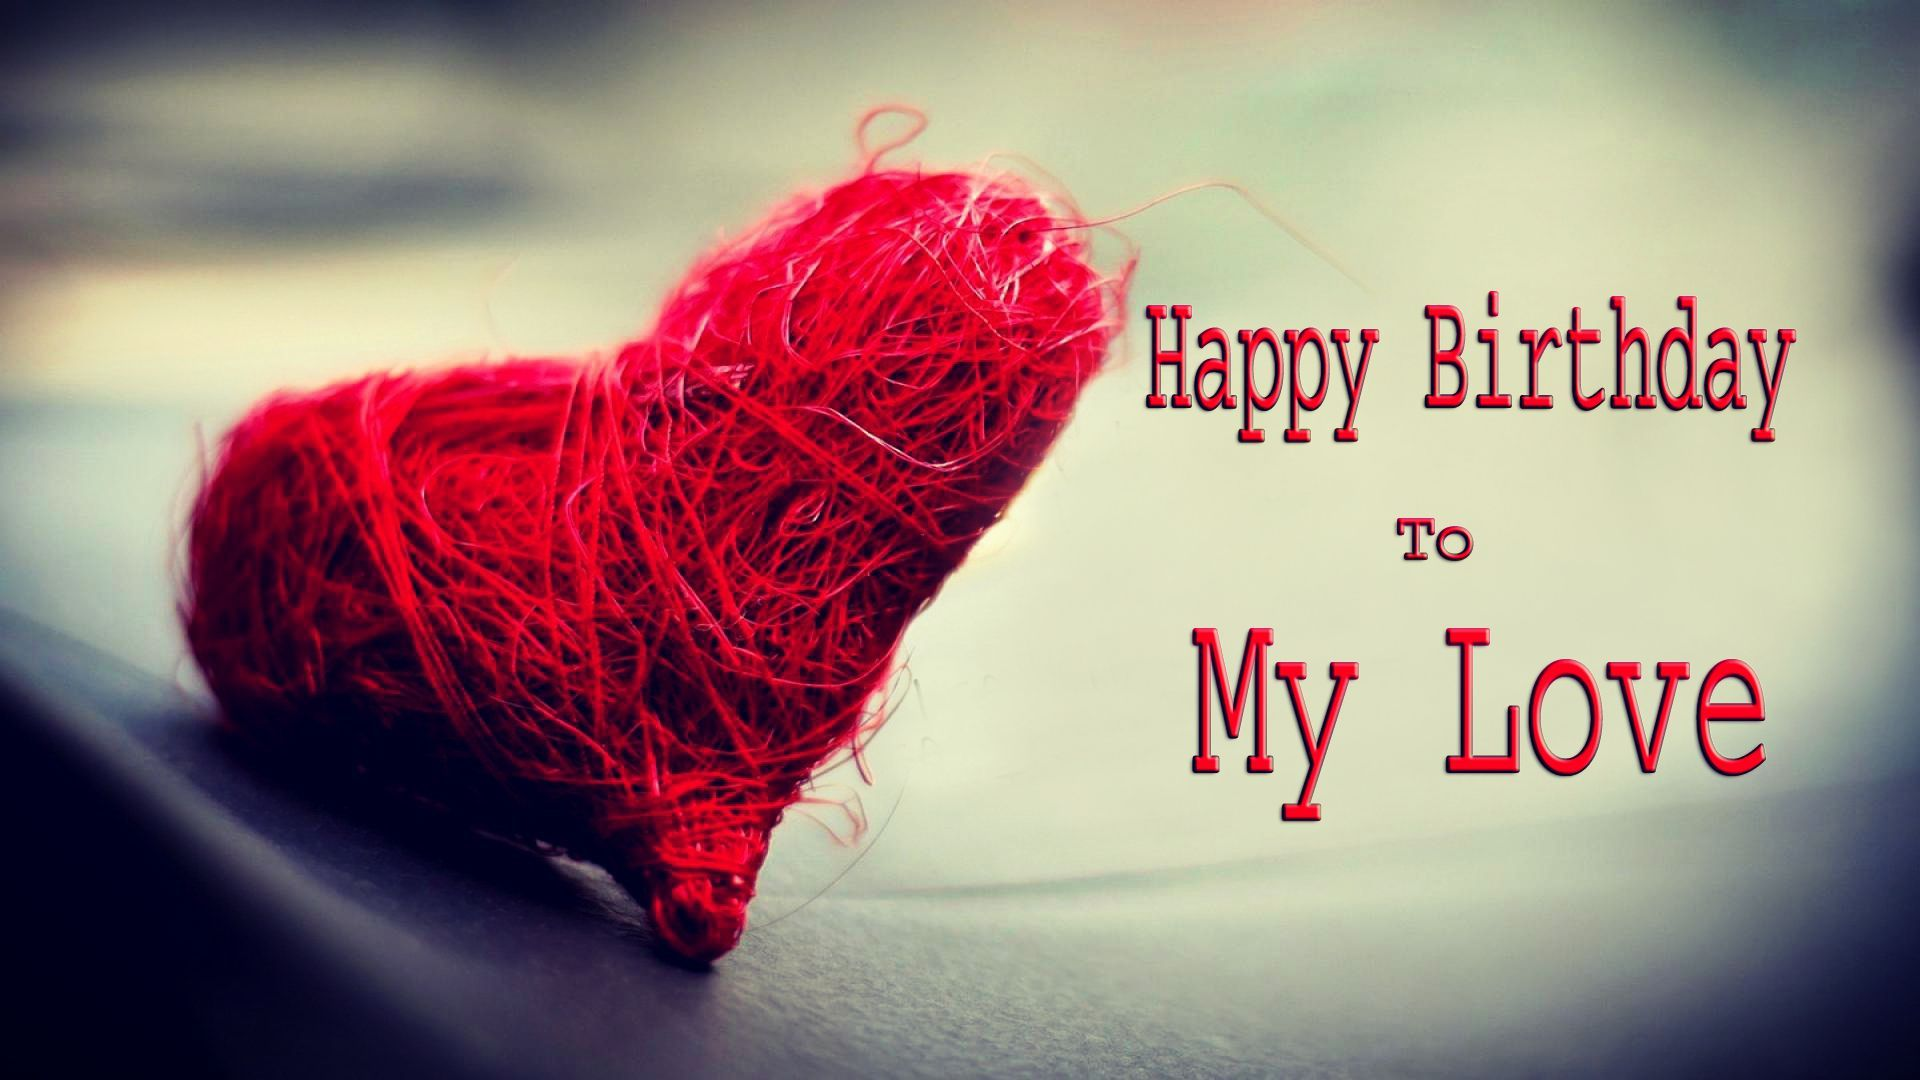 Love Quotes WallPaper HD imashonwquoteslovequotes – Love Birthday Cards